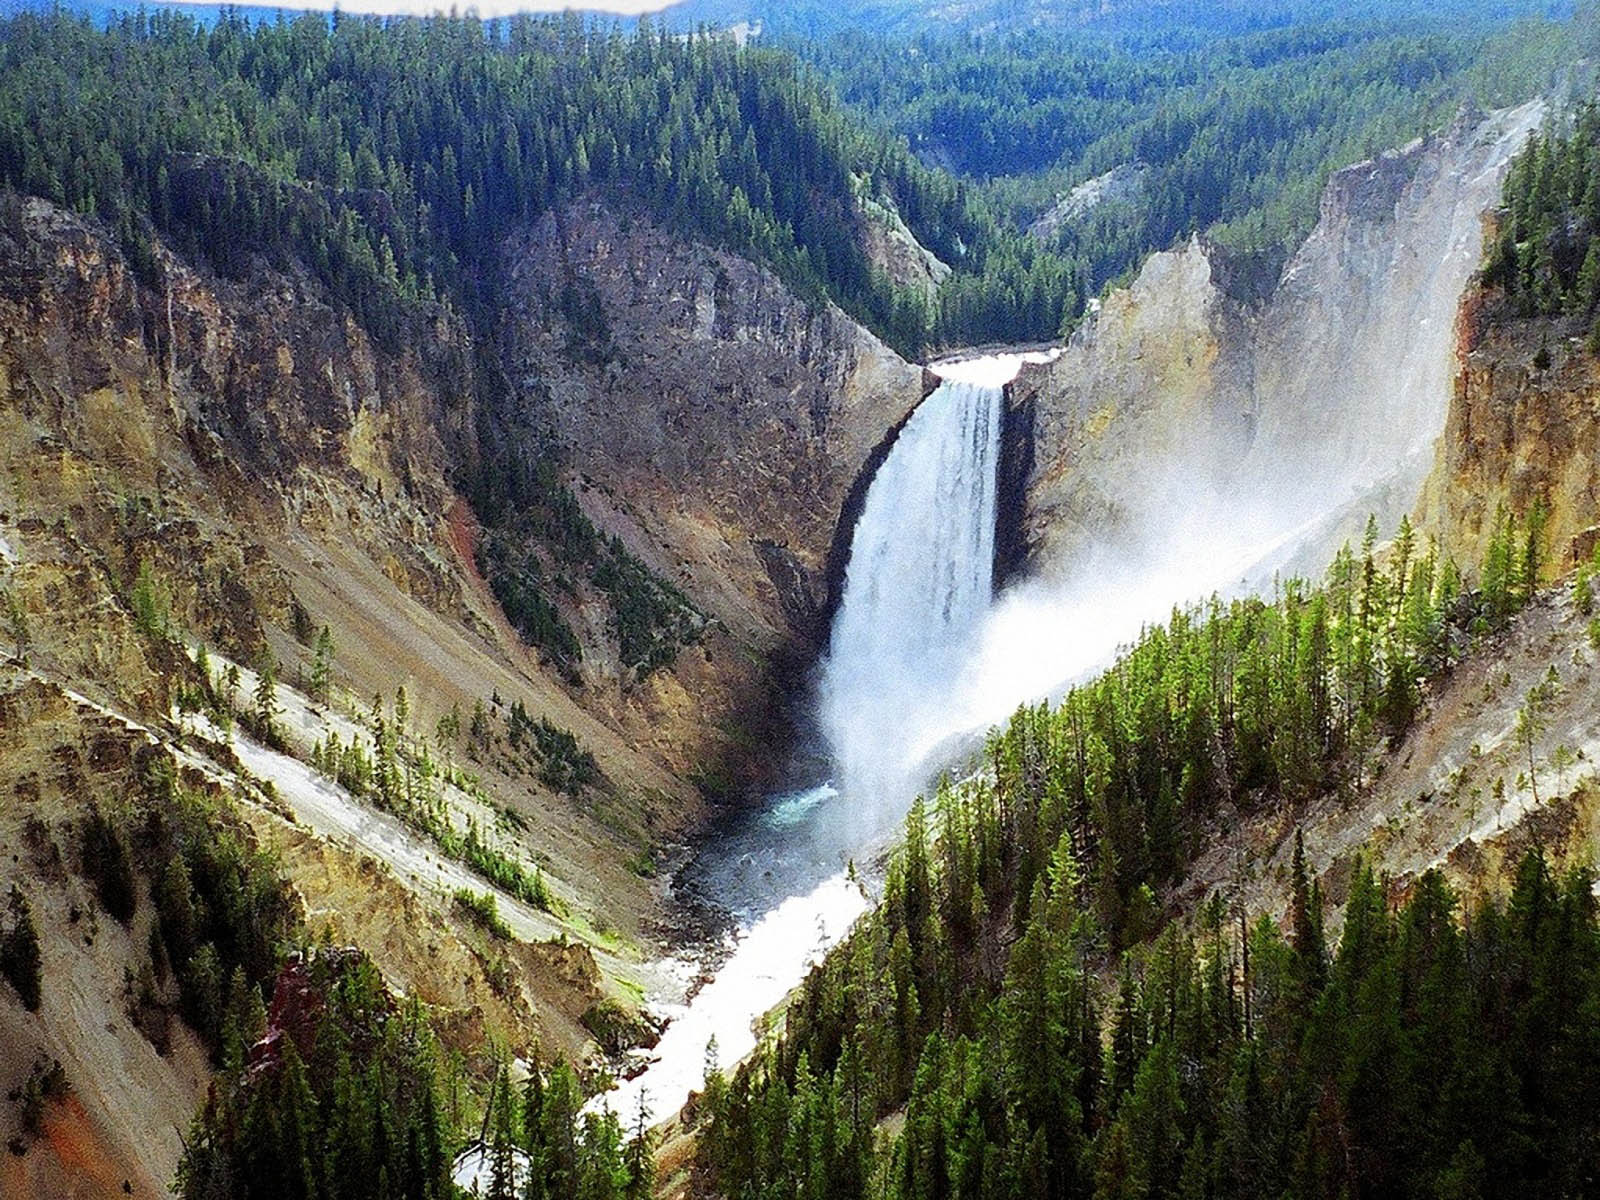 Here are all current yellowstone national park trip offerings sorted by date